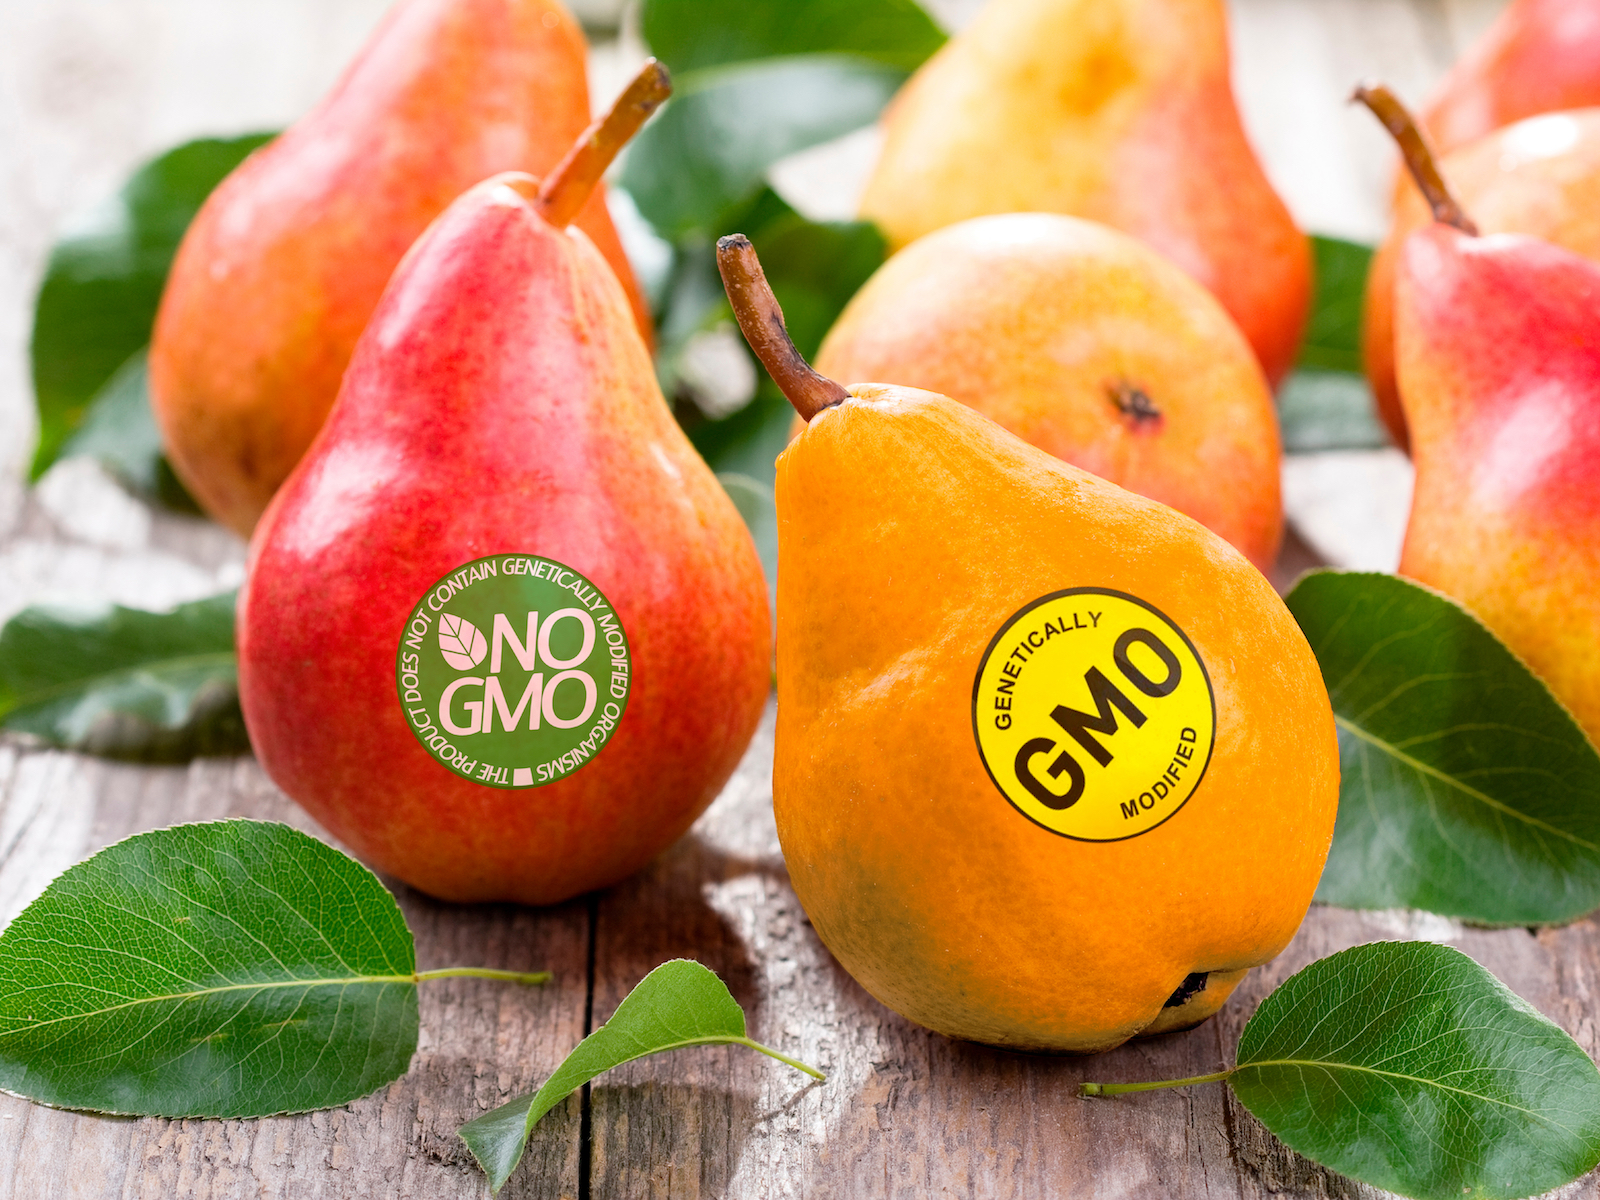 usda-gmo-labeling-rule-FT-BLOG1218.jpg